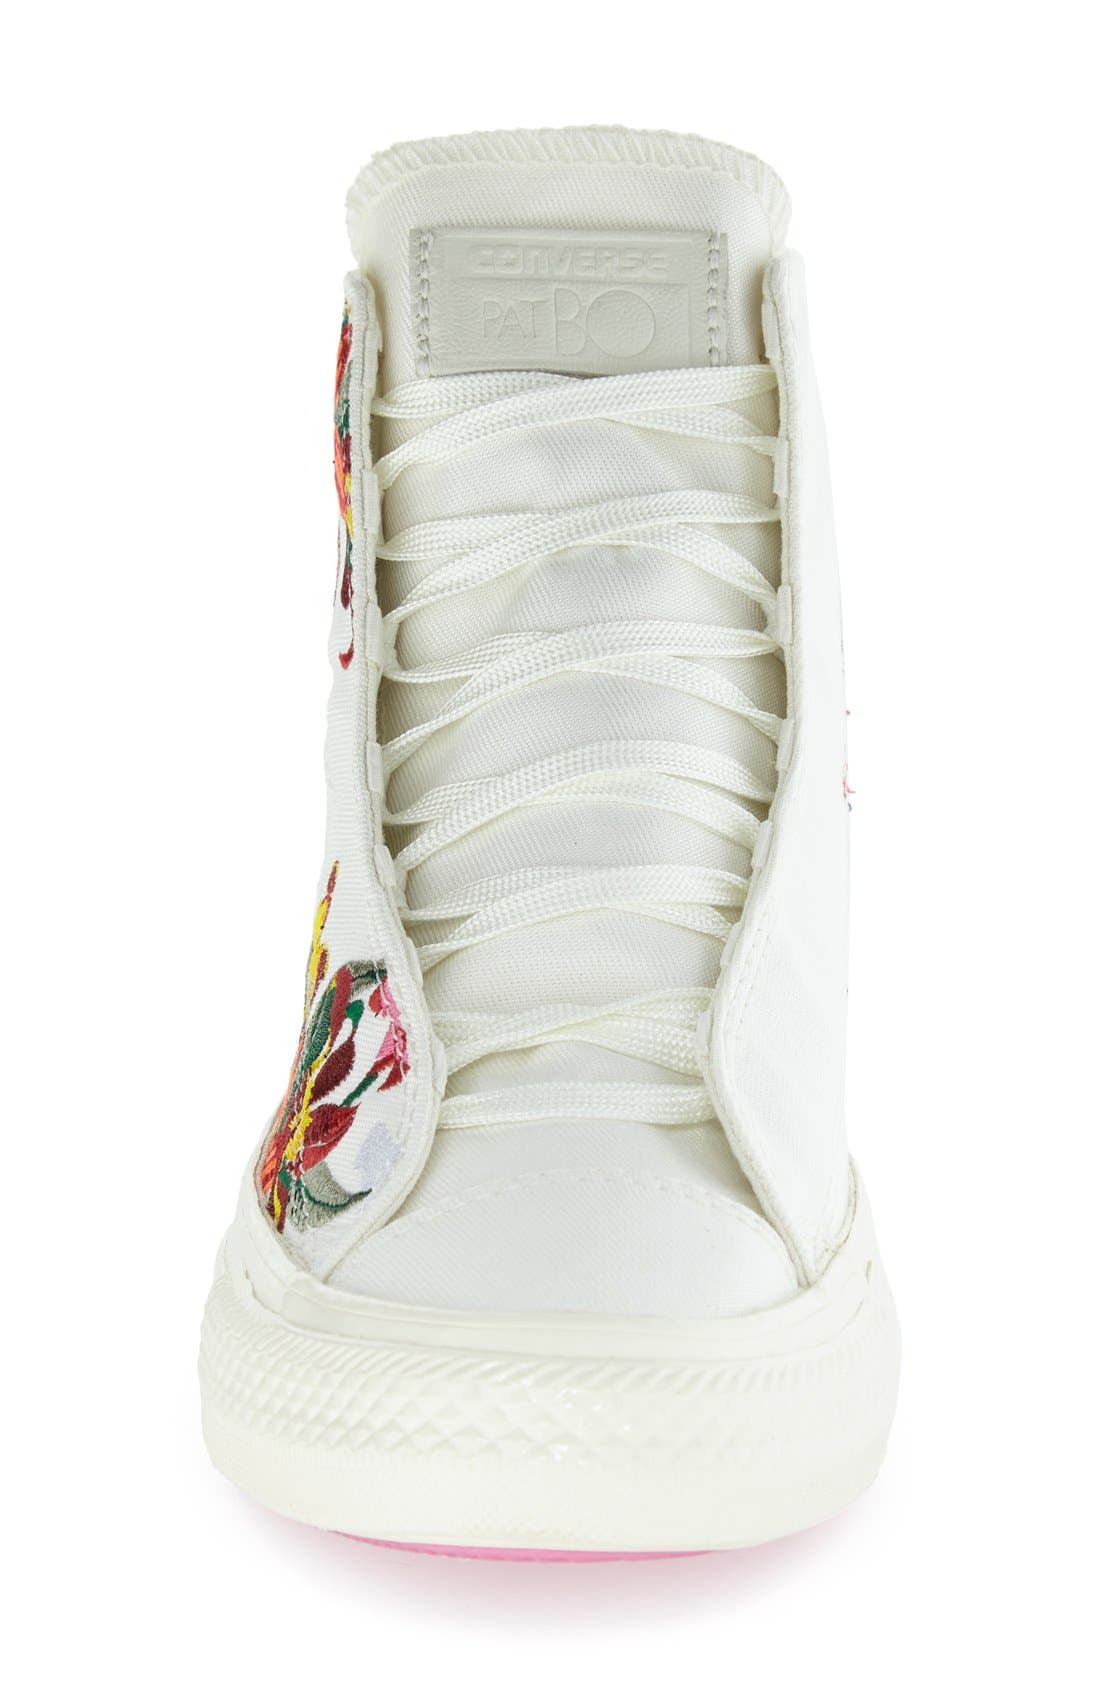 Chuck Taylor<sup>®</sup> All Star<sup>®</sup> 'Patbo' Floral High Top Sneaker,                             Alternate thumbnail 4, color,                             100